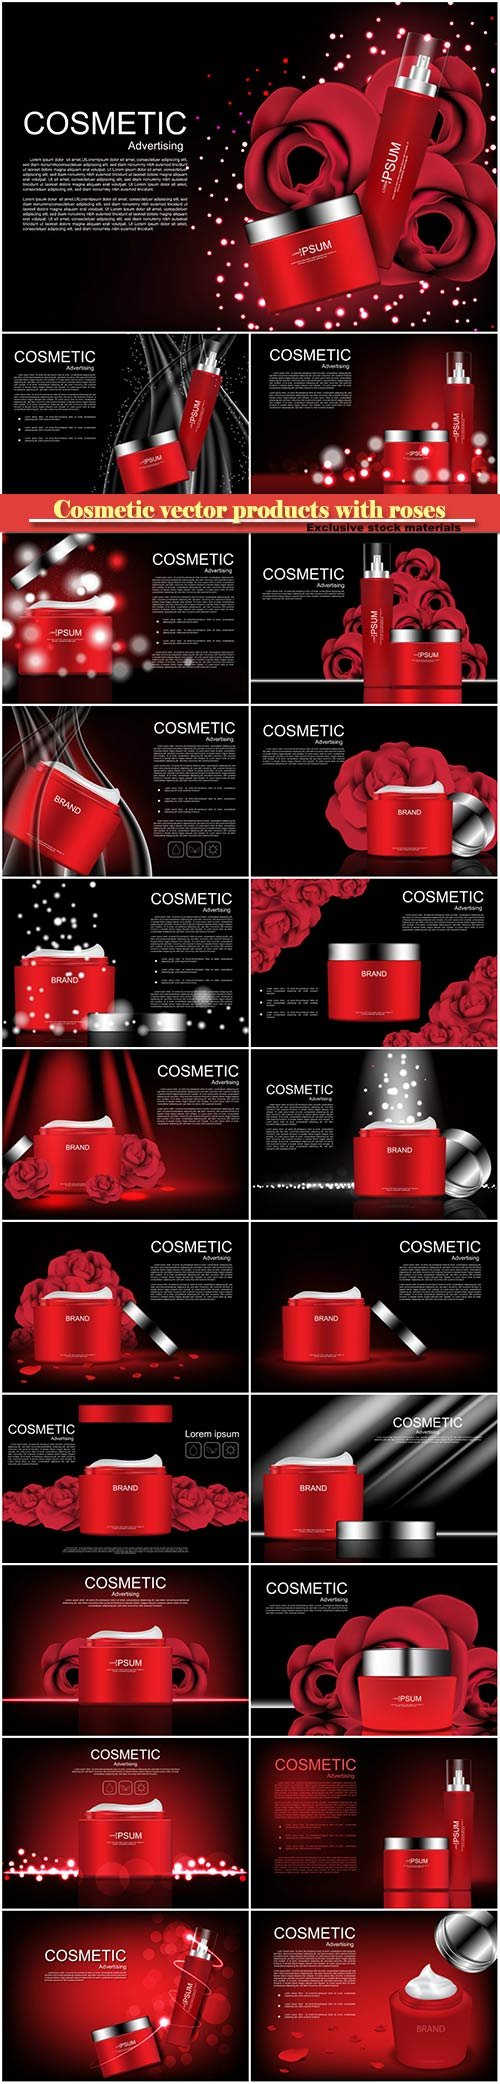 Cosmetic vector products with roses on dark background